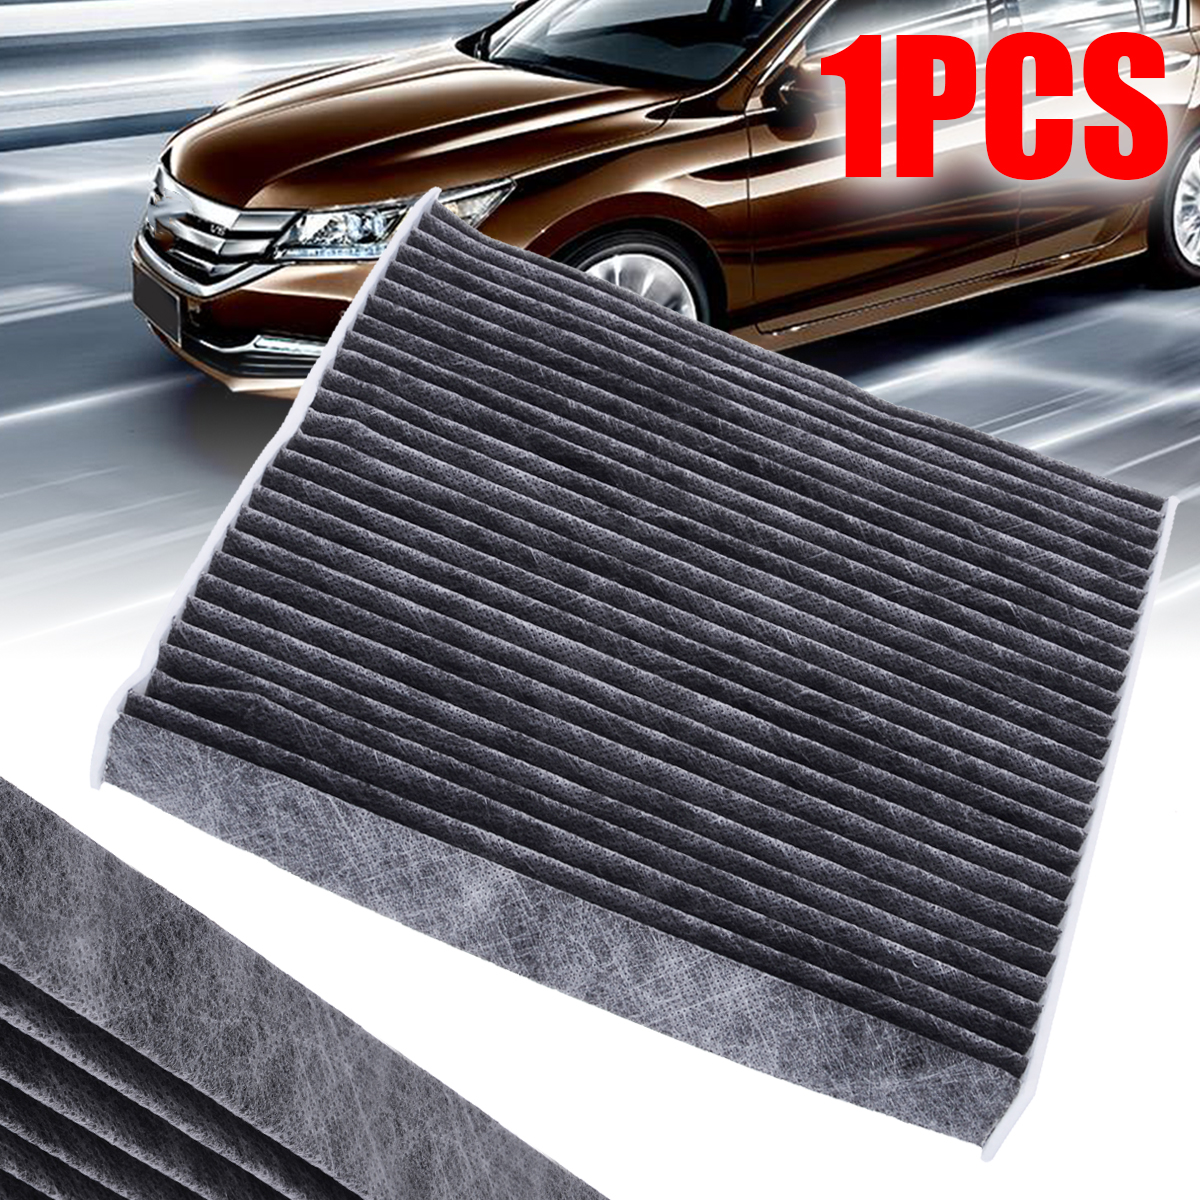 Automobiles Filters 1pc Non-woven Air Cleaner Cabin Air Filter 80292-TZ5-A41 OEM For Honda Accord Civic CRV Odyssey PilotAutomobiles Filters 1pc Non-woven Air Cleaner Cabin Air Filter 80292-TZ5-A41 OEM For Honda Accord Civic CRV Odyssey Pilot